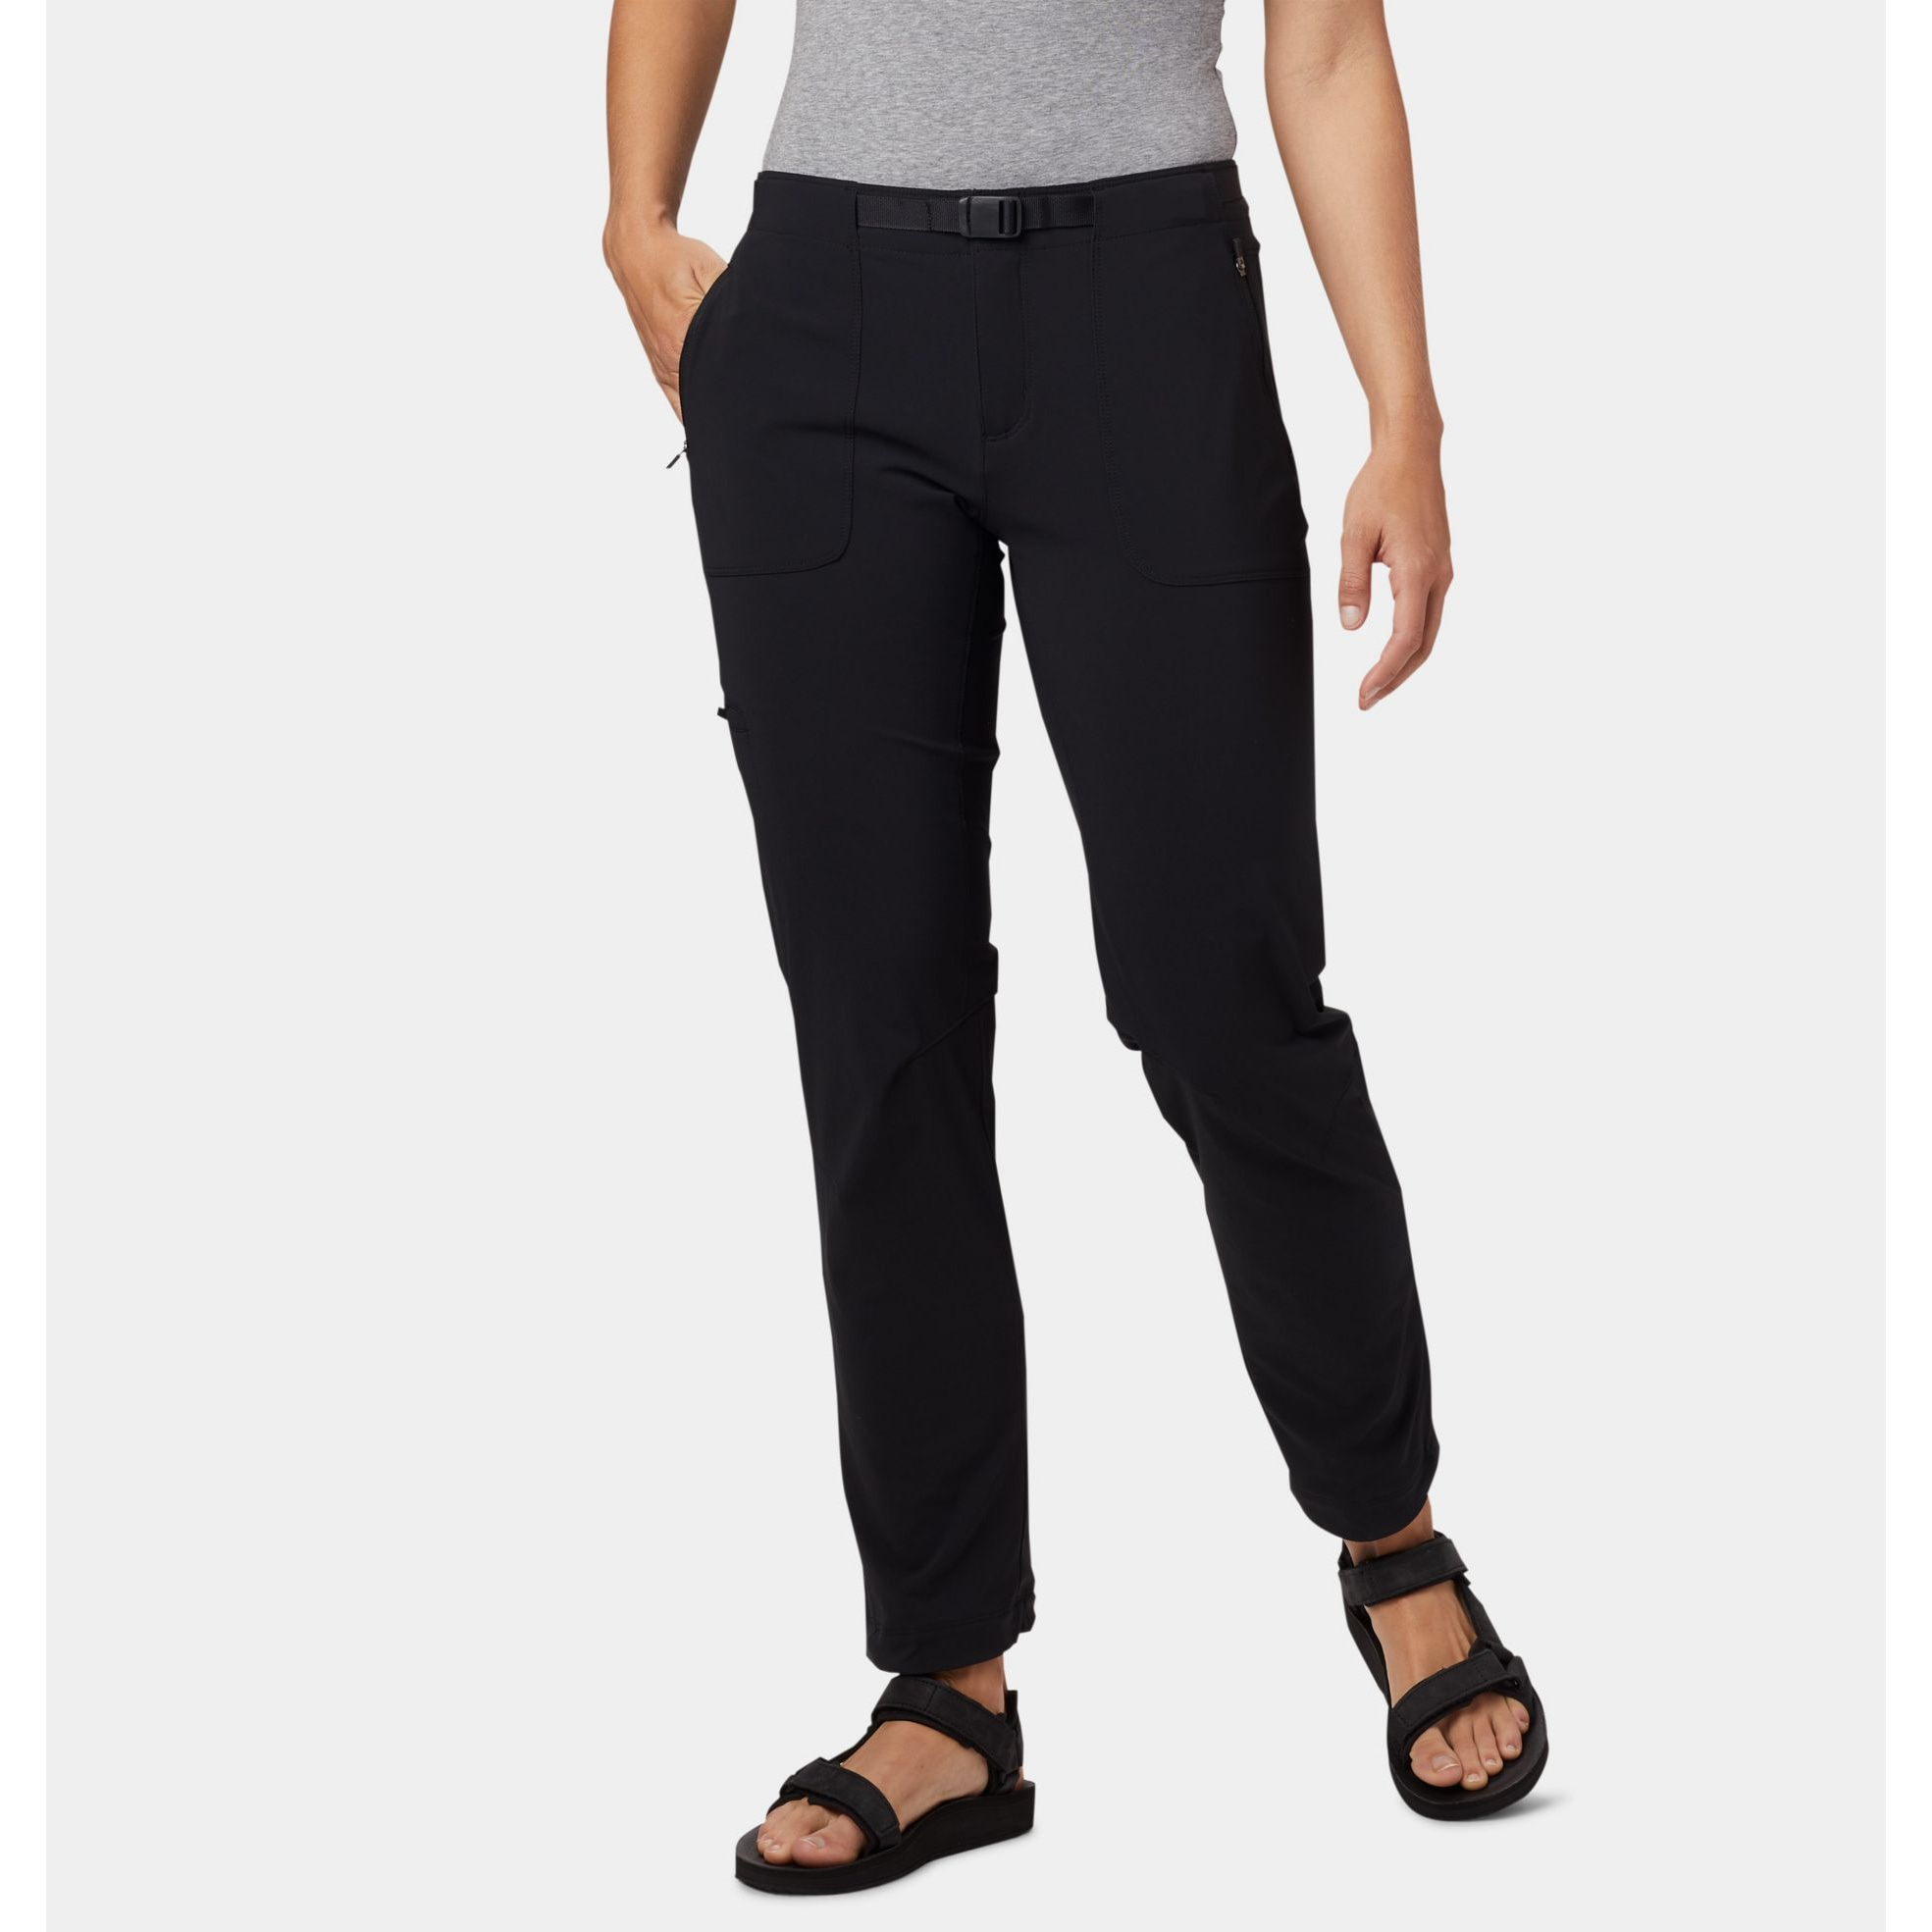 Chockstone Hike Pant - Women's